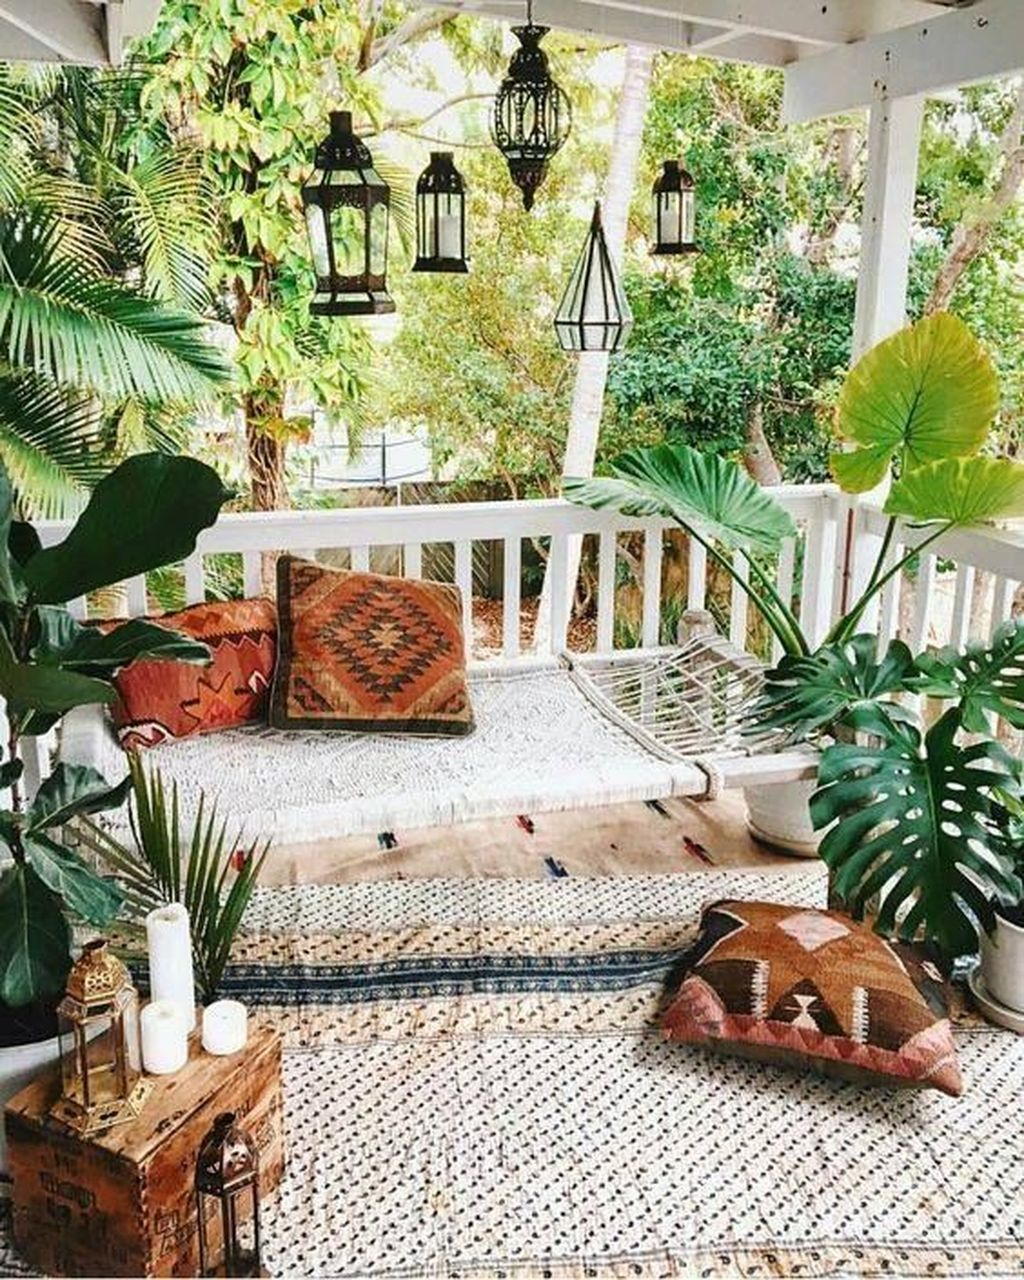 Inspiring Boho Outdoor Decorating Ideas For Backyard48